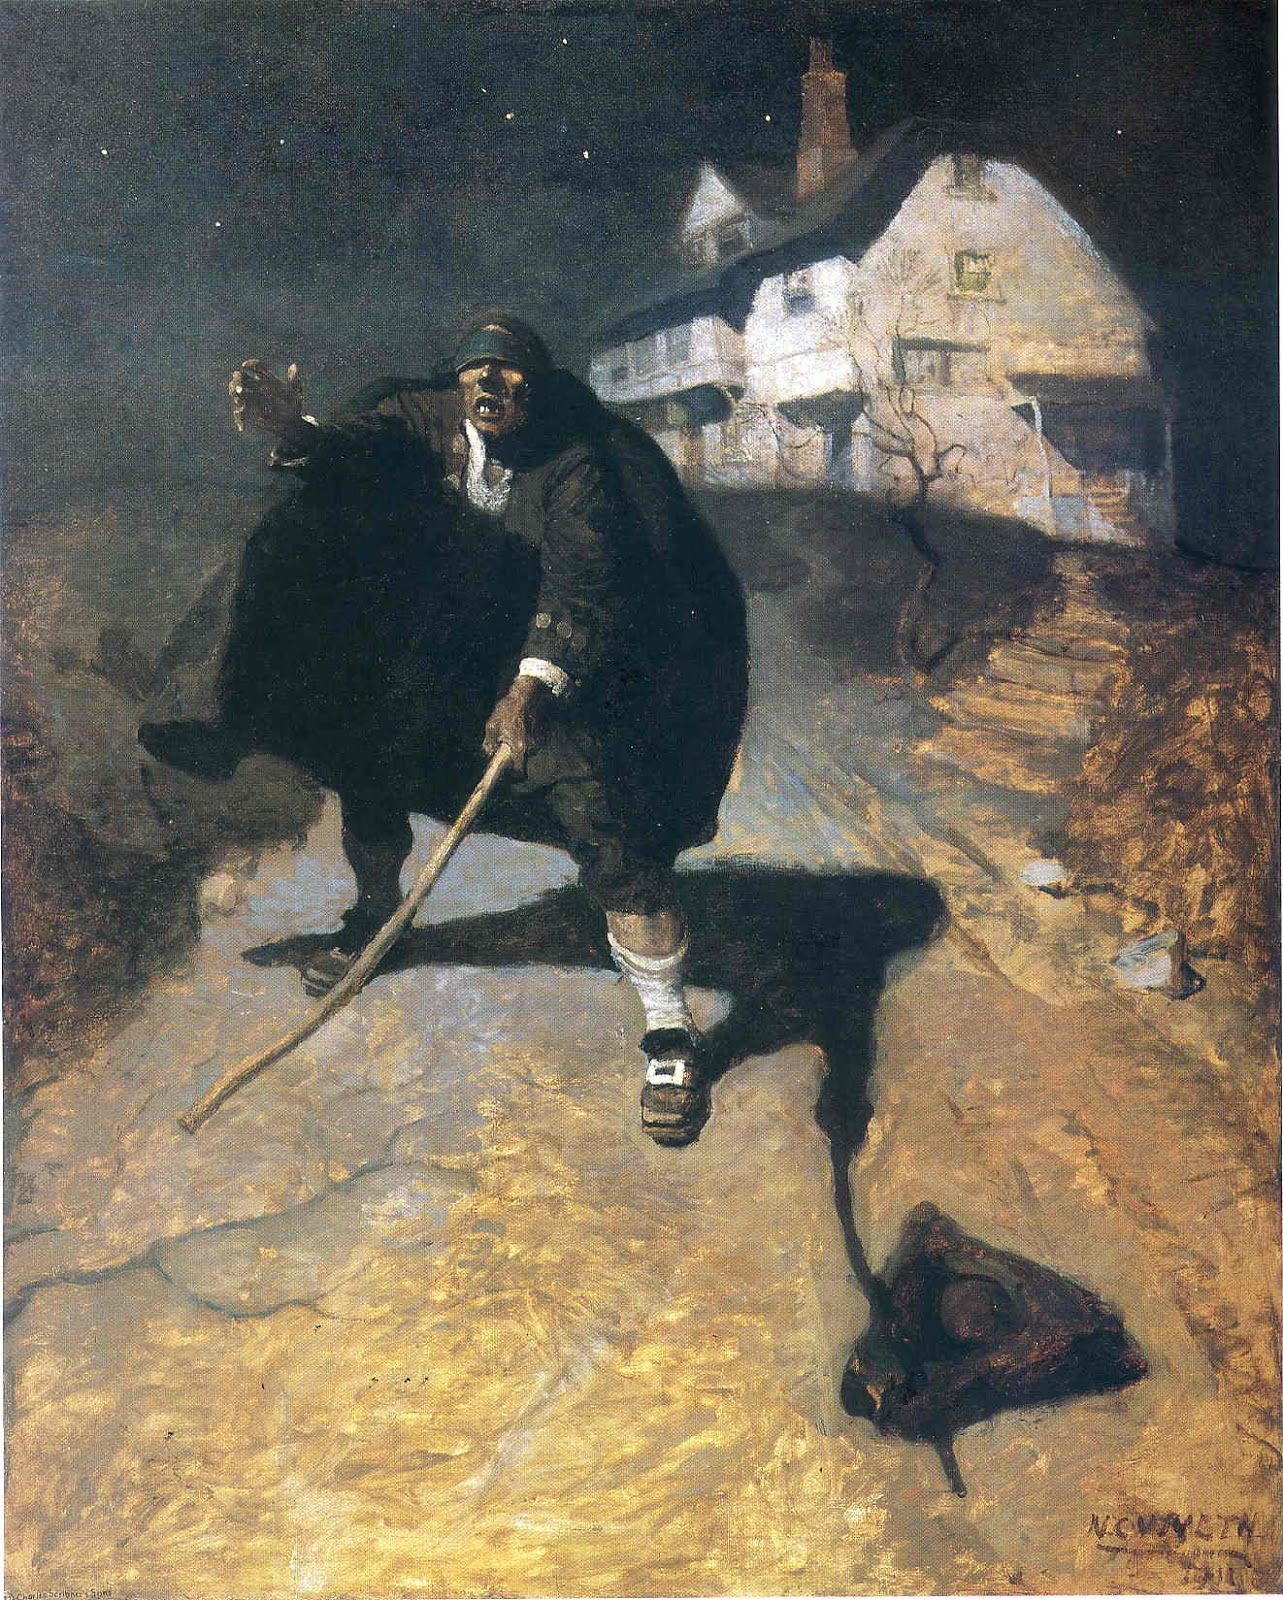 Blind Pew by N.C. Wyeth